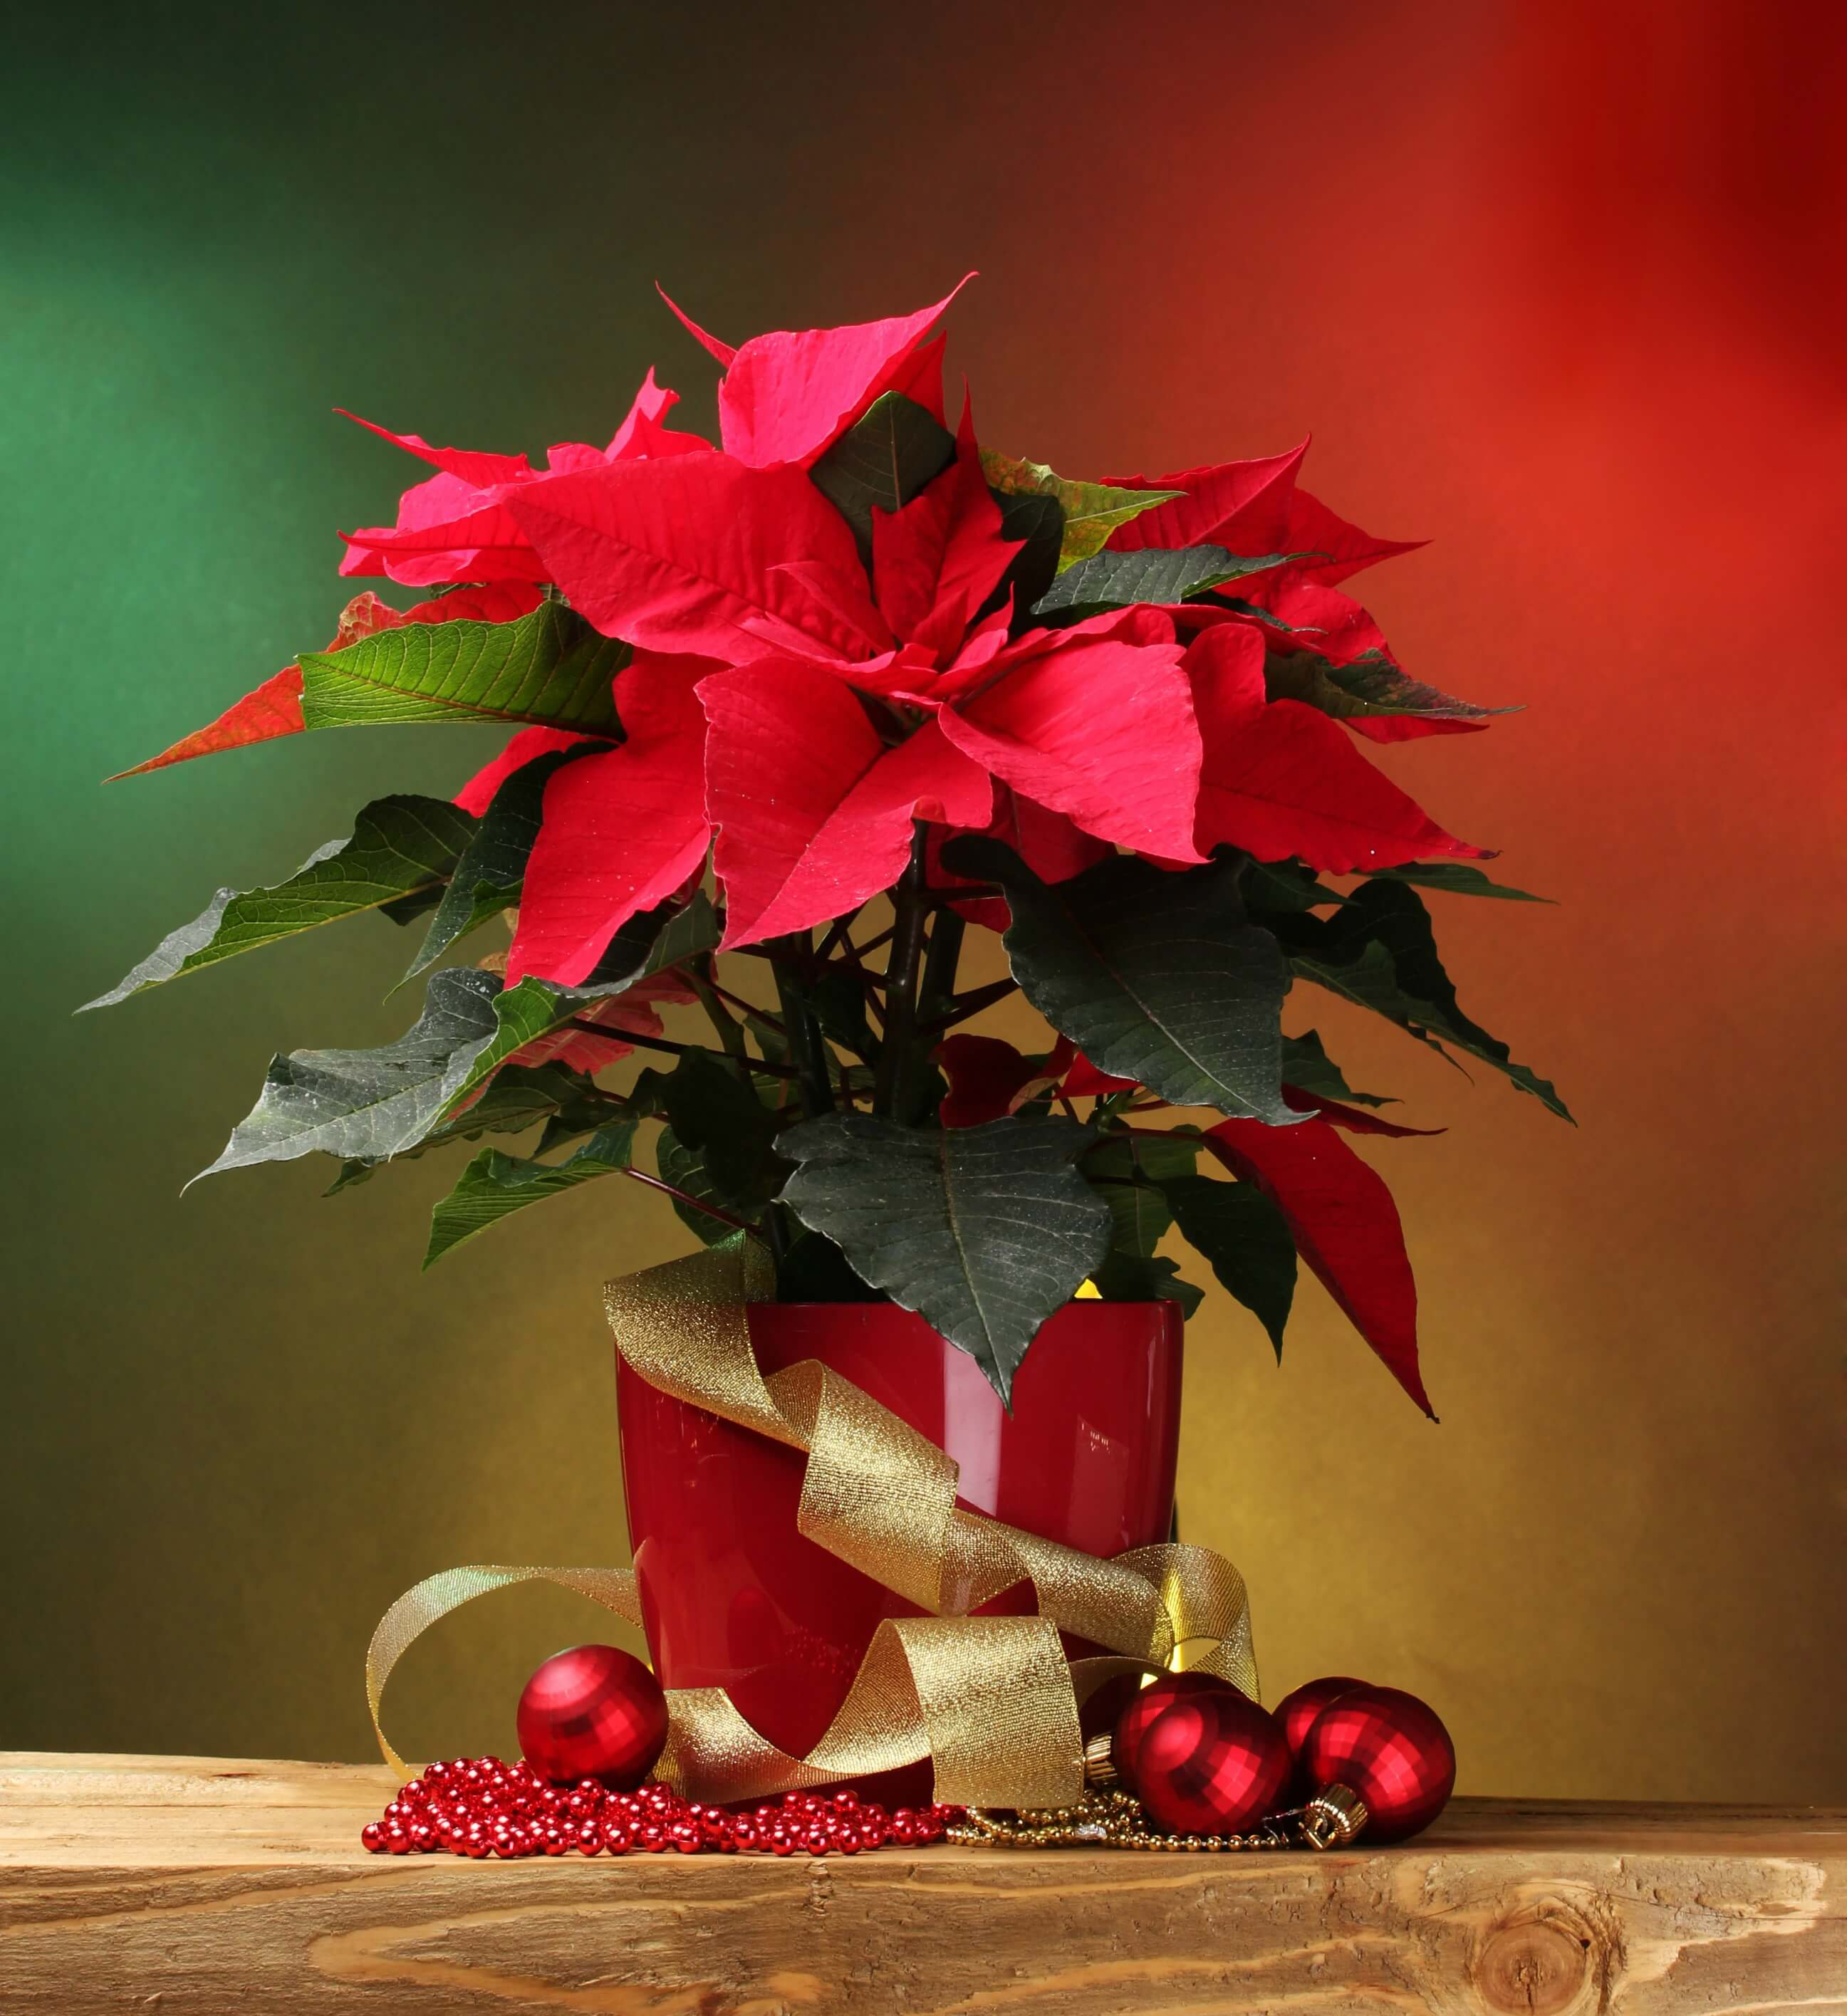 Poinsettia care - beautiful red poinsettia plant